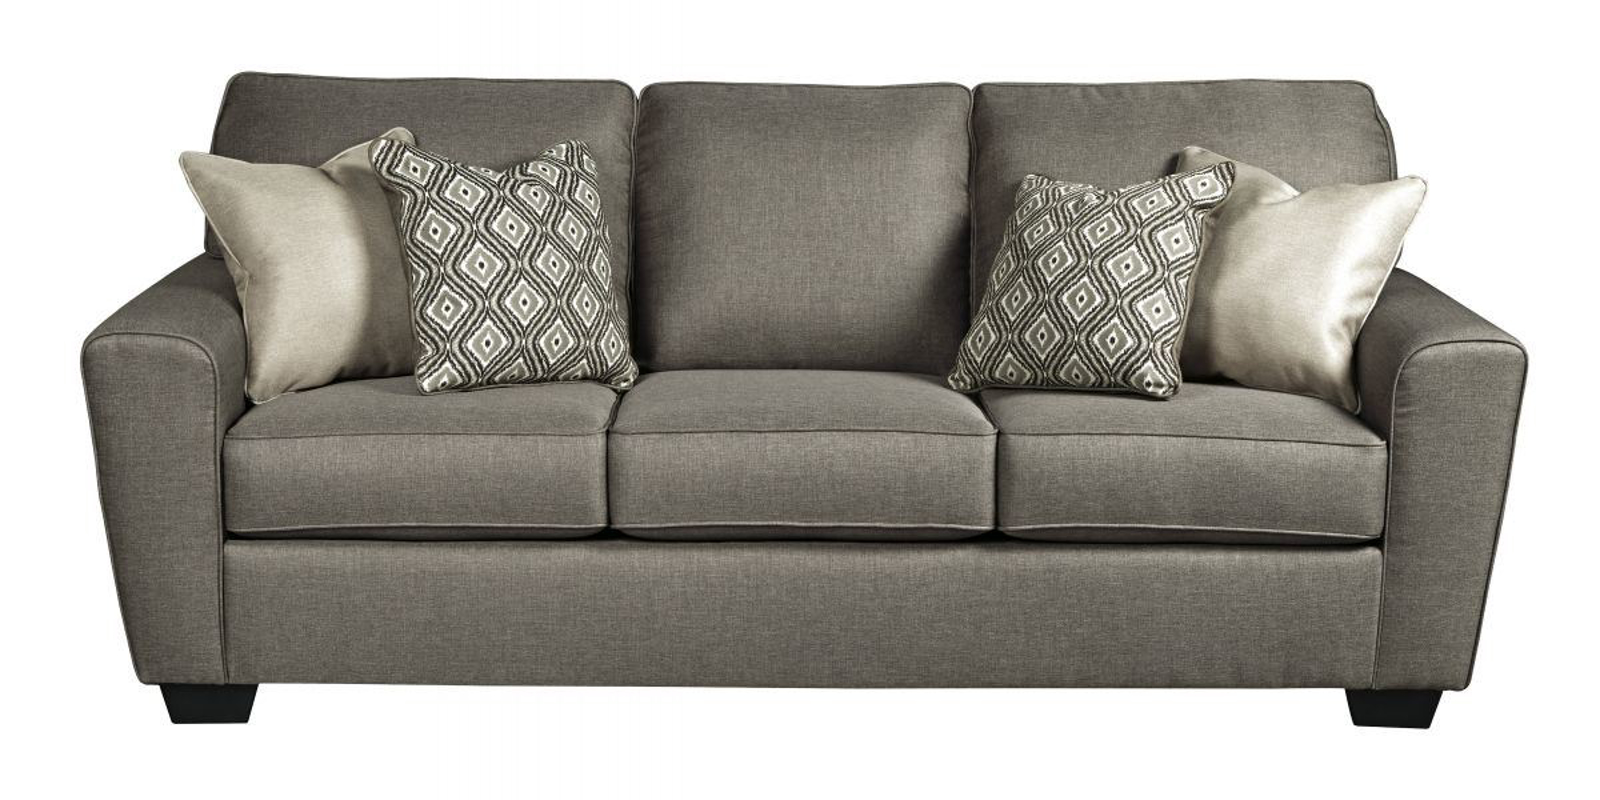 Picture of Calicho Sofa